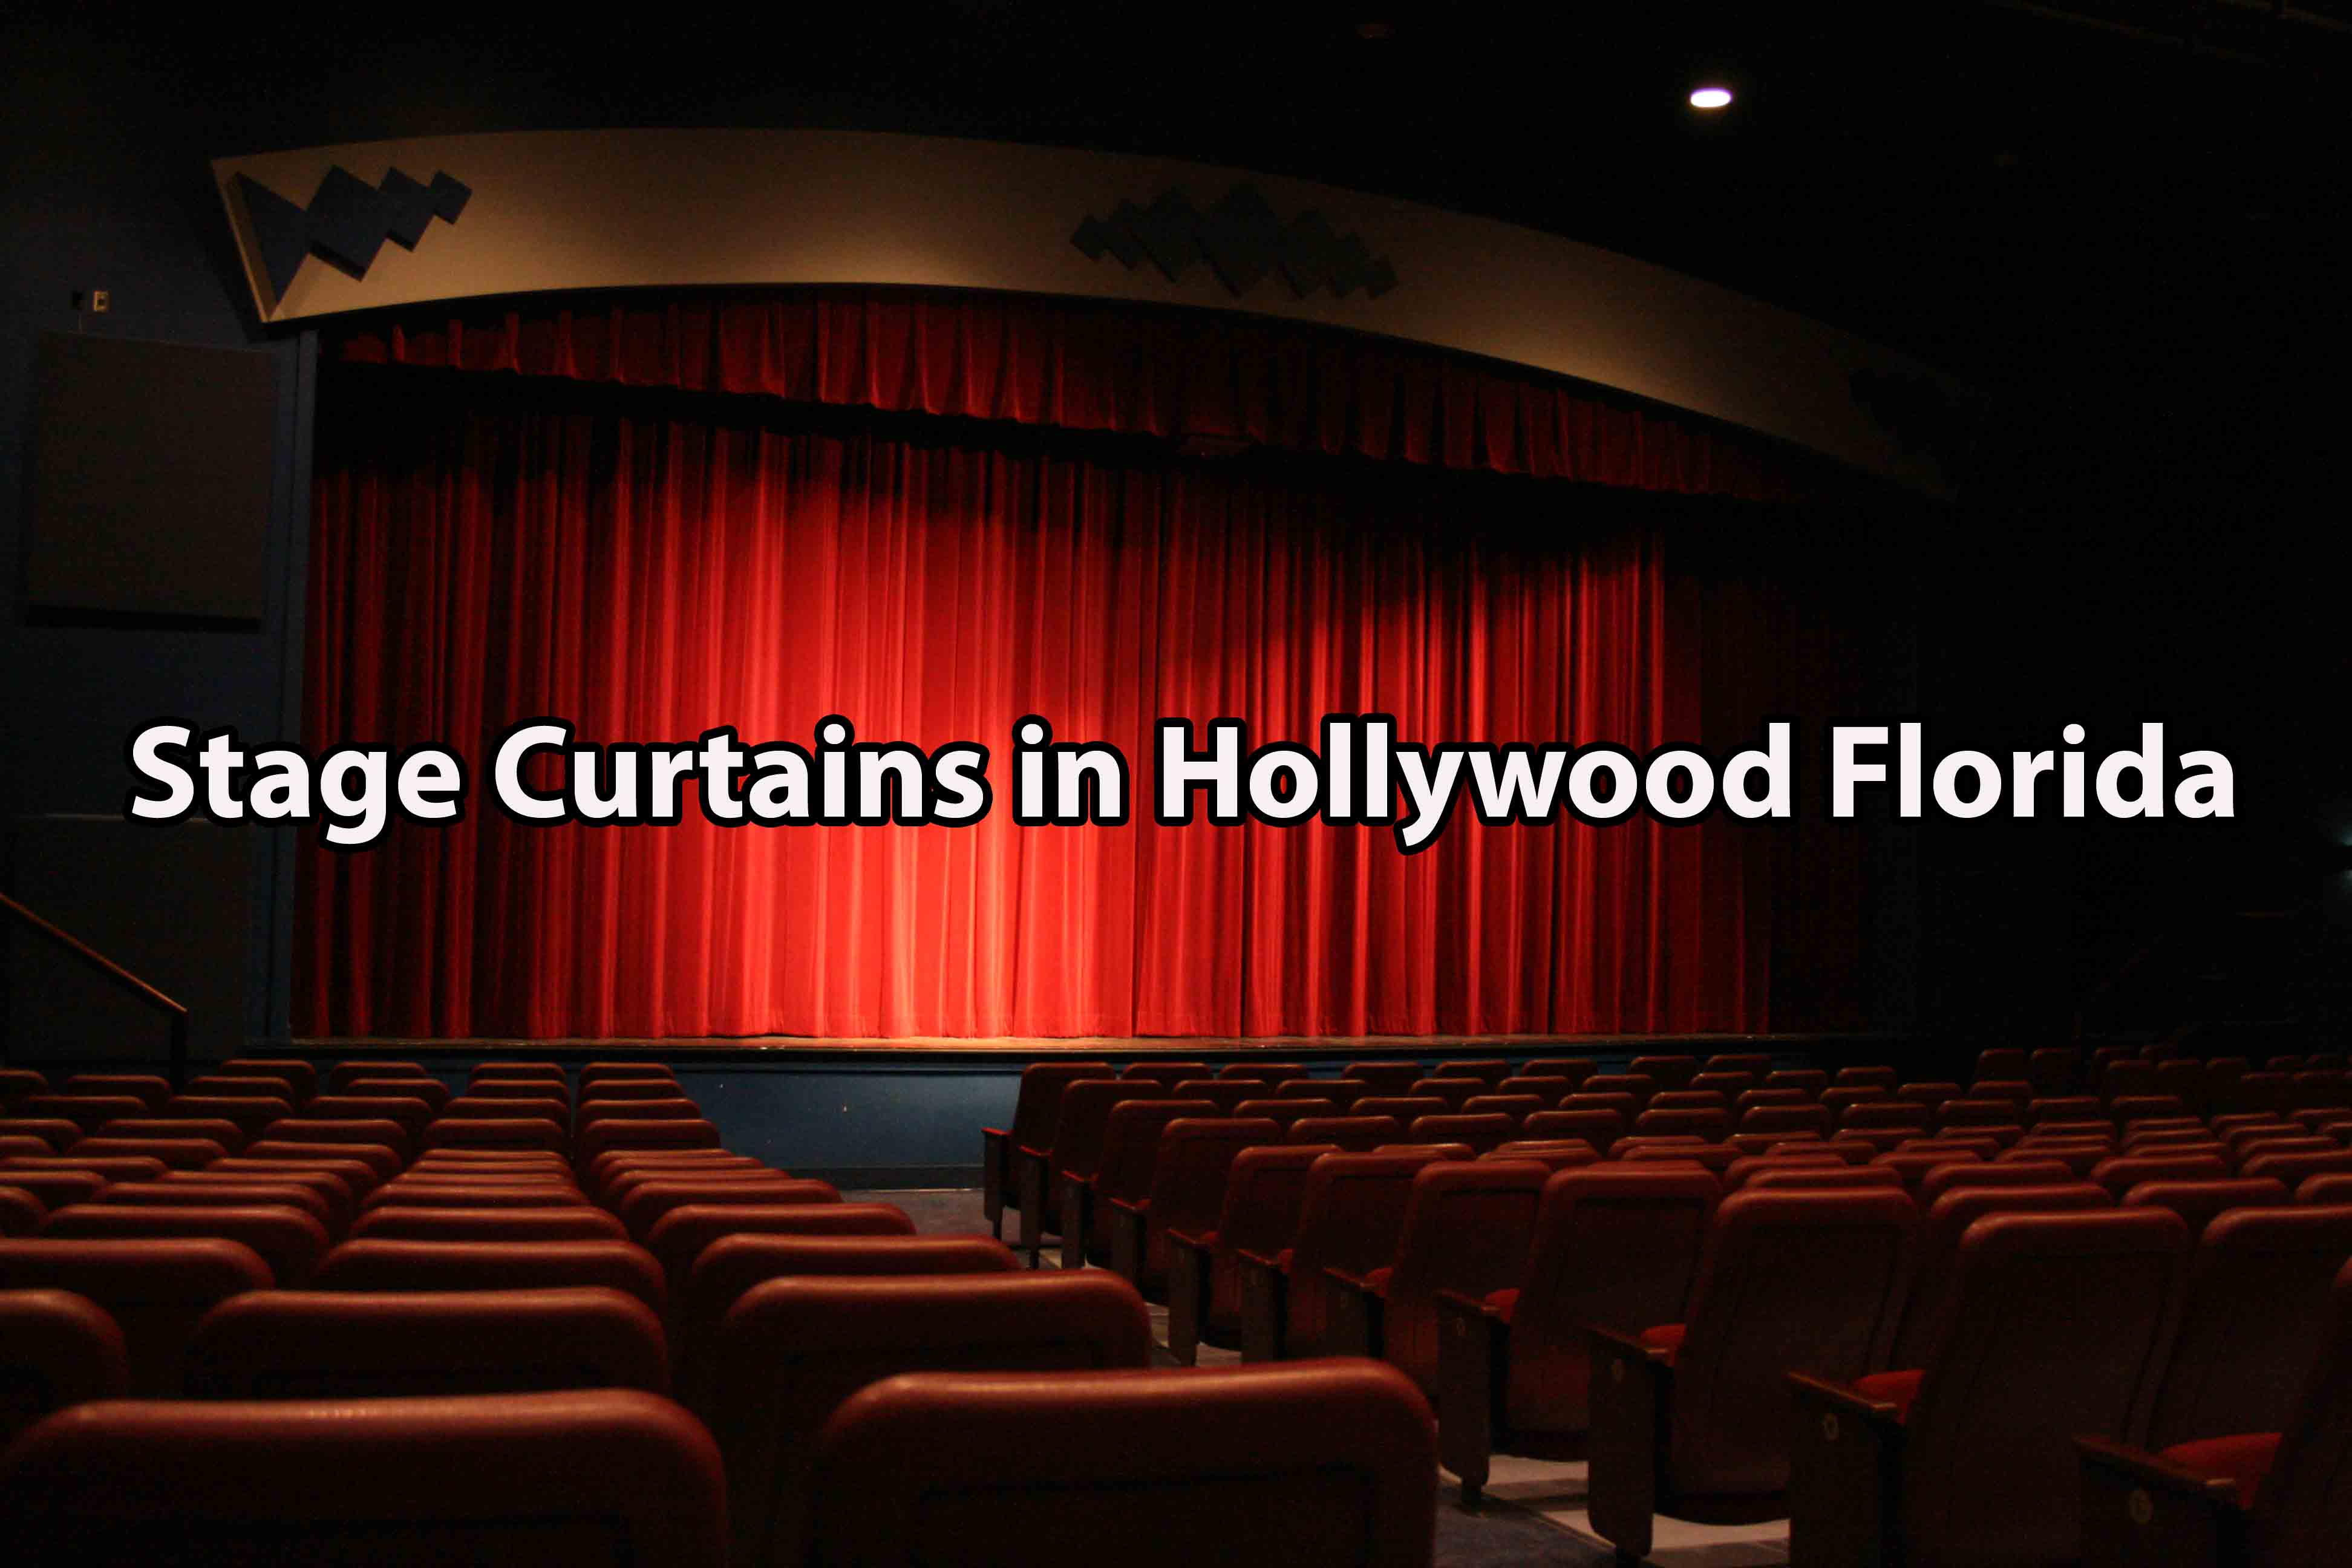 Stage Curtains in Hollywood Florida